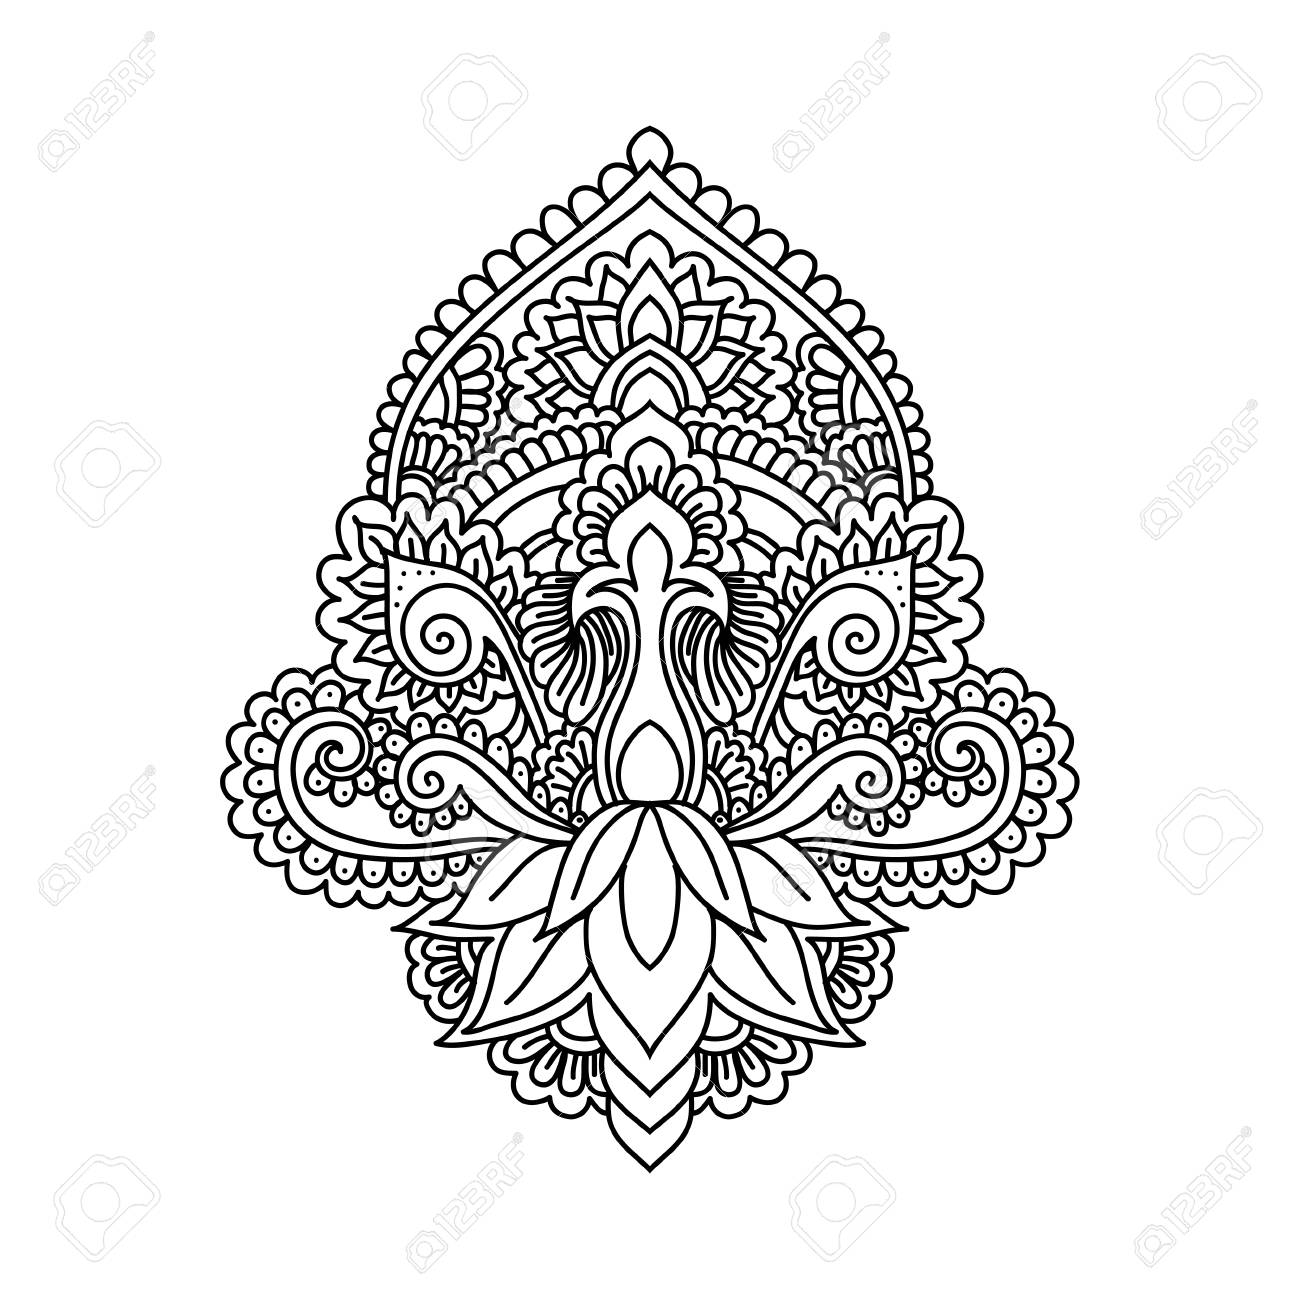 Vector Ornamental Lotus Flowerethnic Artpatterned Indian Paisley